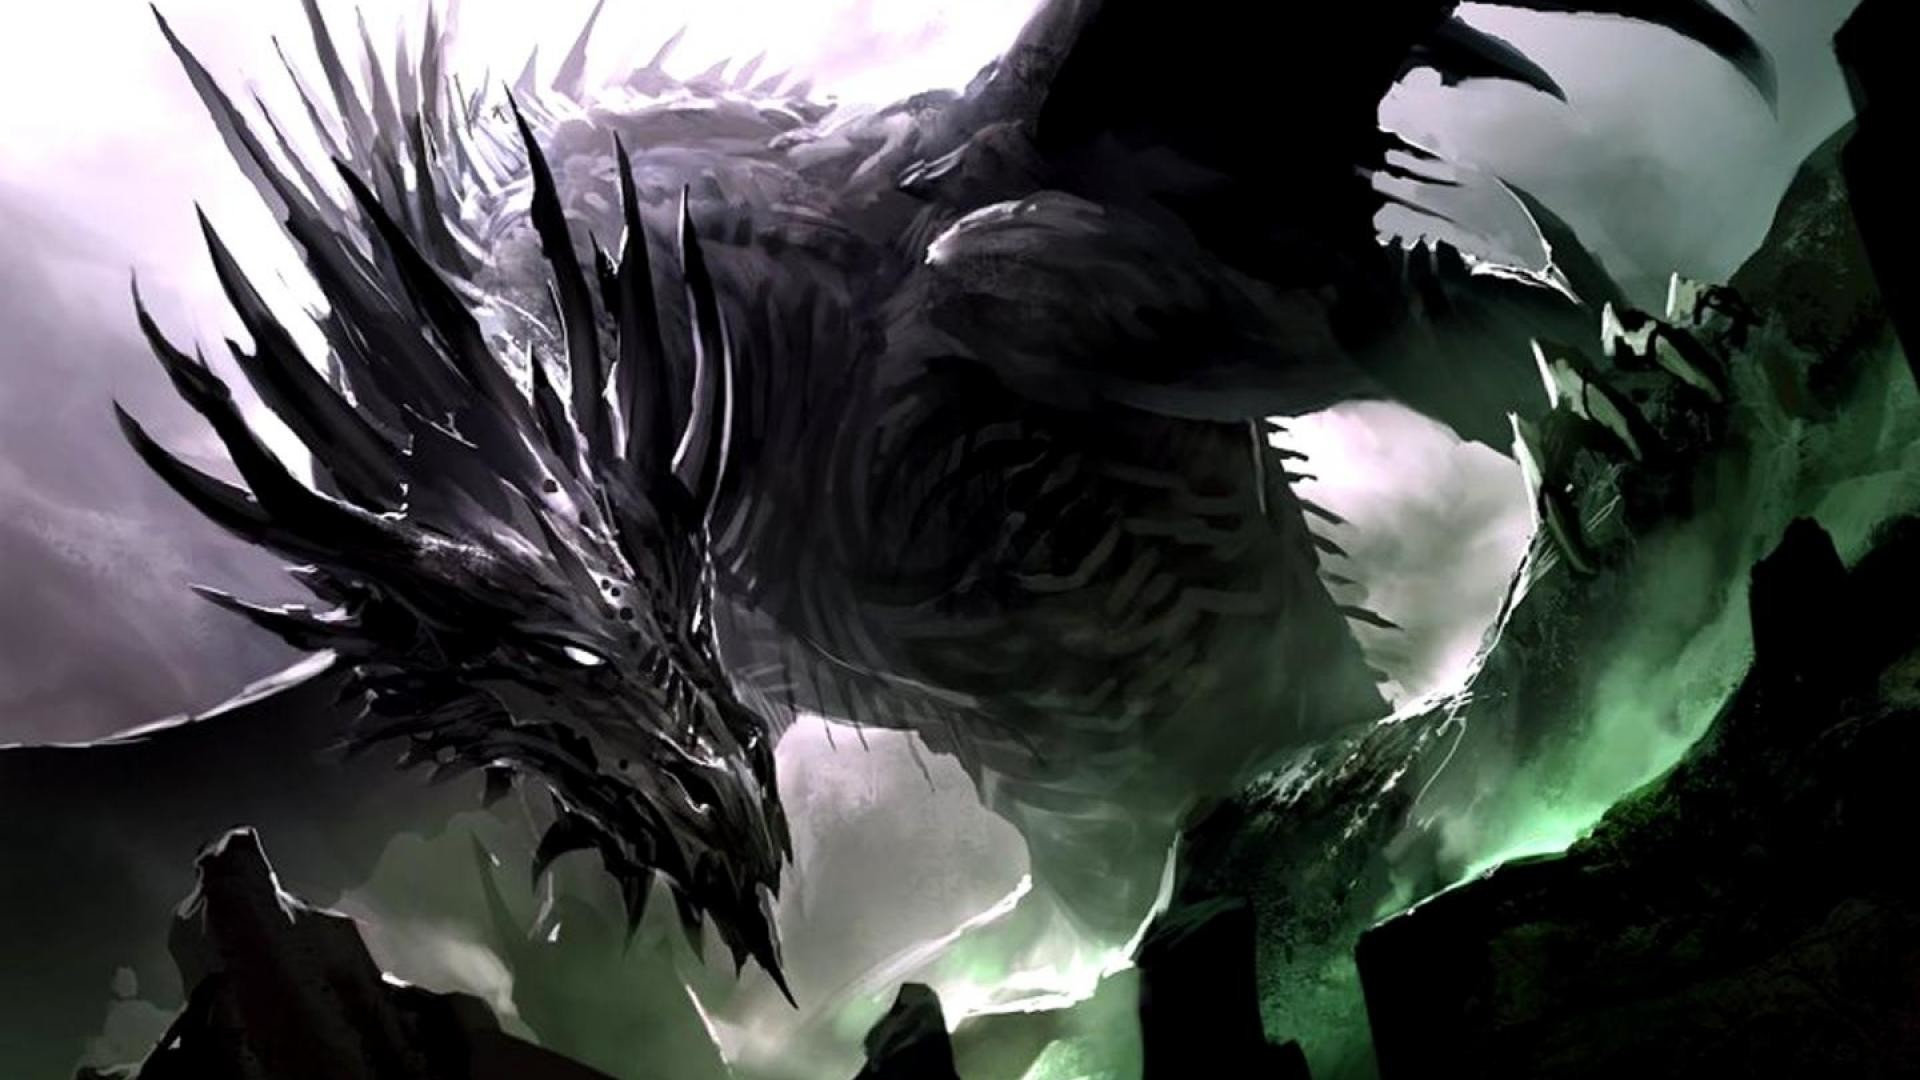 1920x1080 Black Dragon Wallpaper HD 7 hd background hd screensavers hd wallpaper .